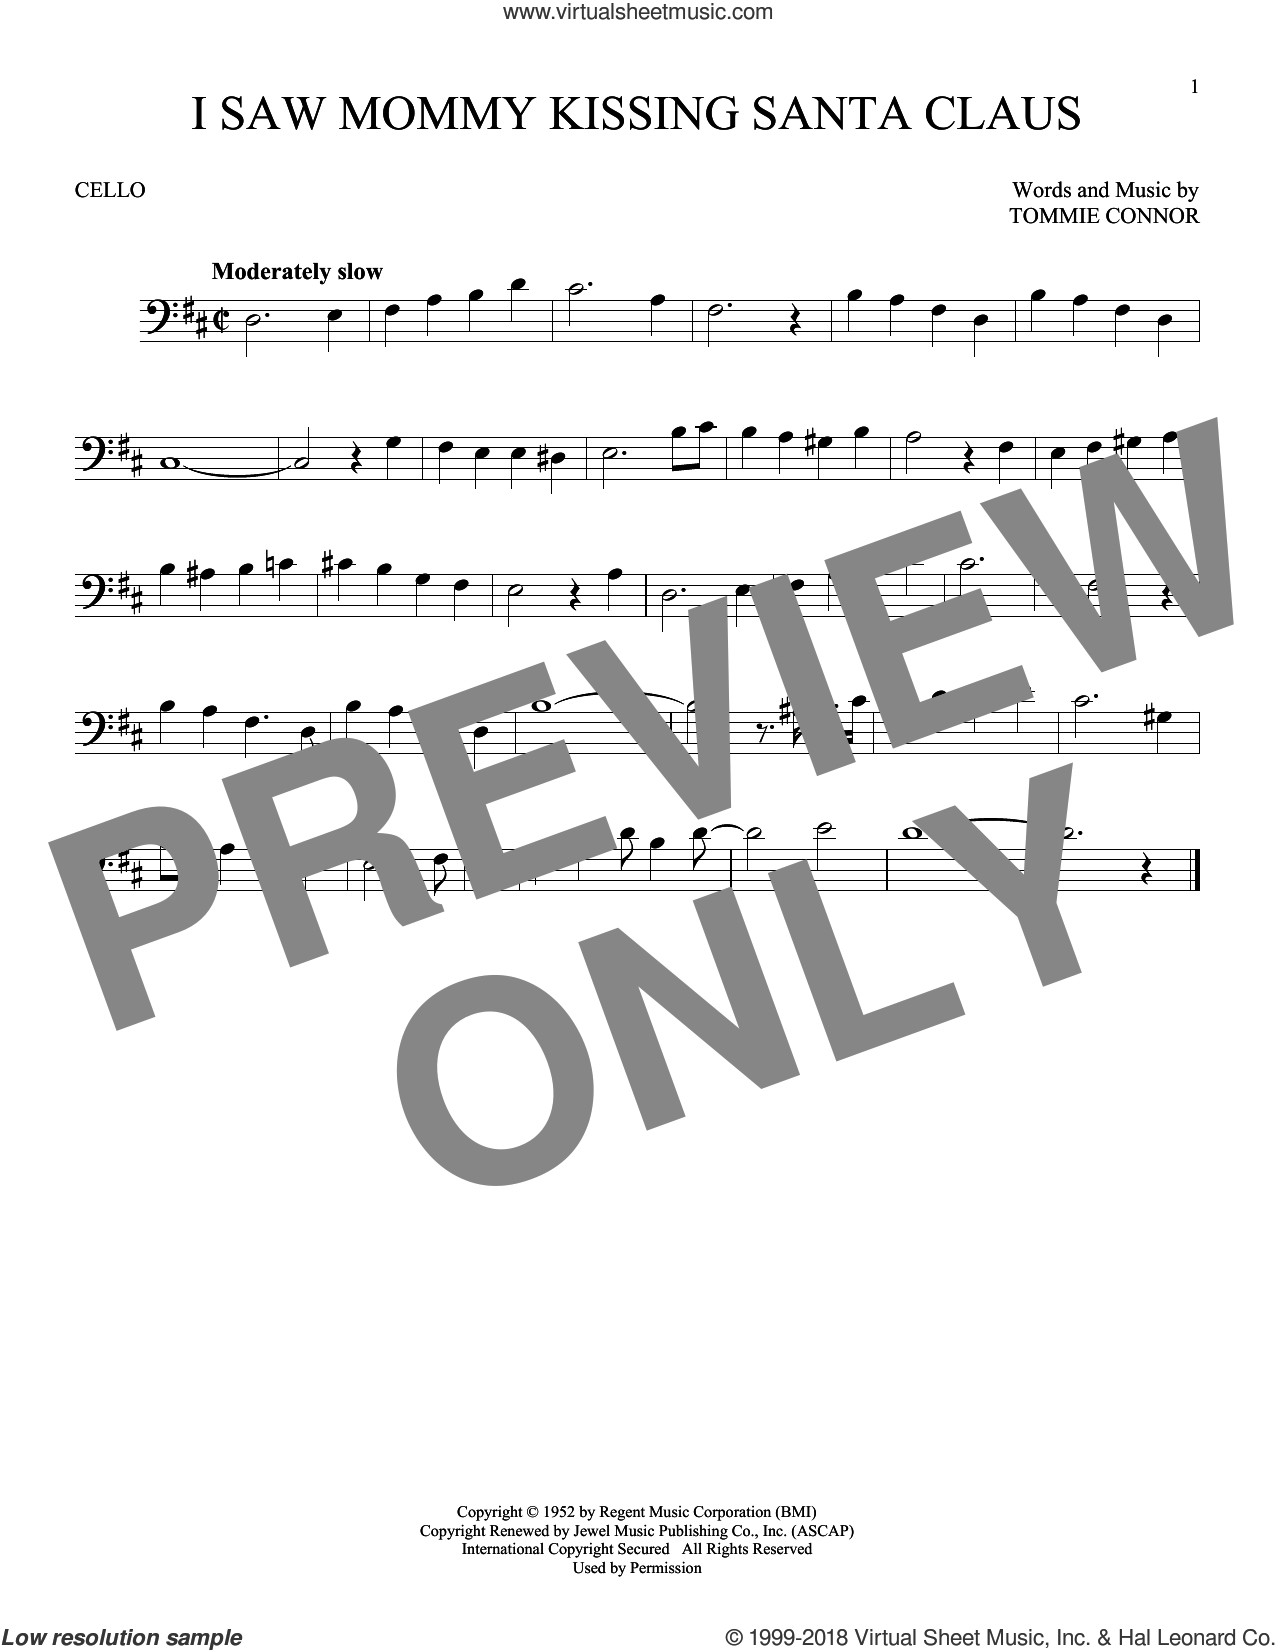 I Saw Mommy Kissing Santa Claus sheet music for cello solo by Tommie Connor, intermediate skill level